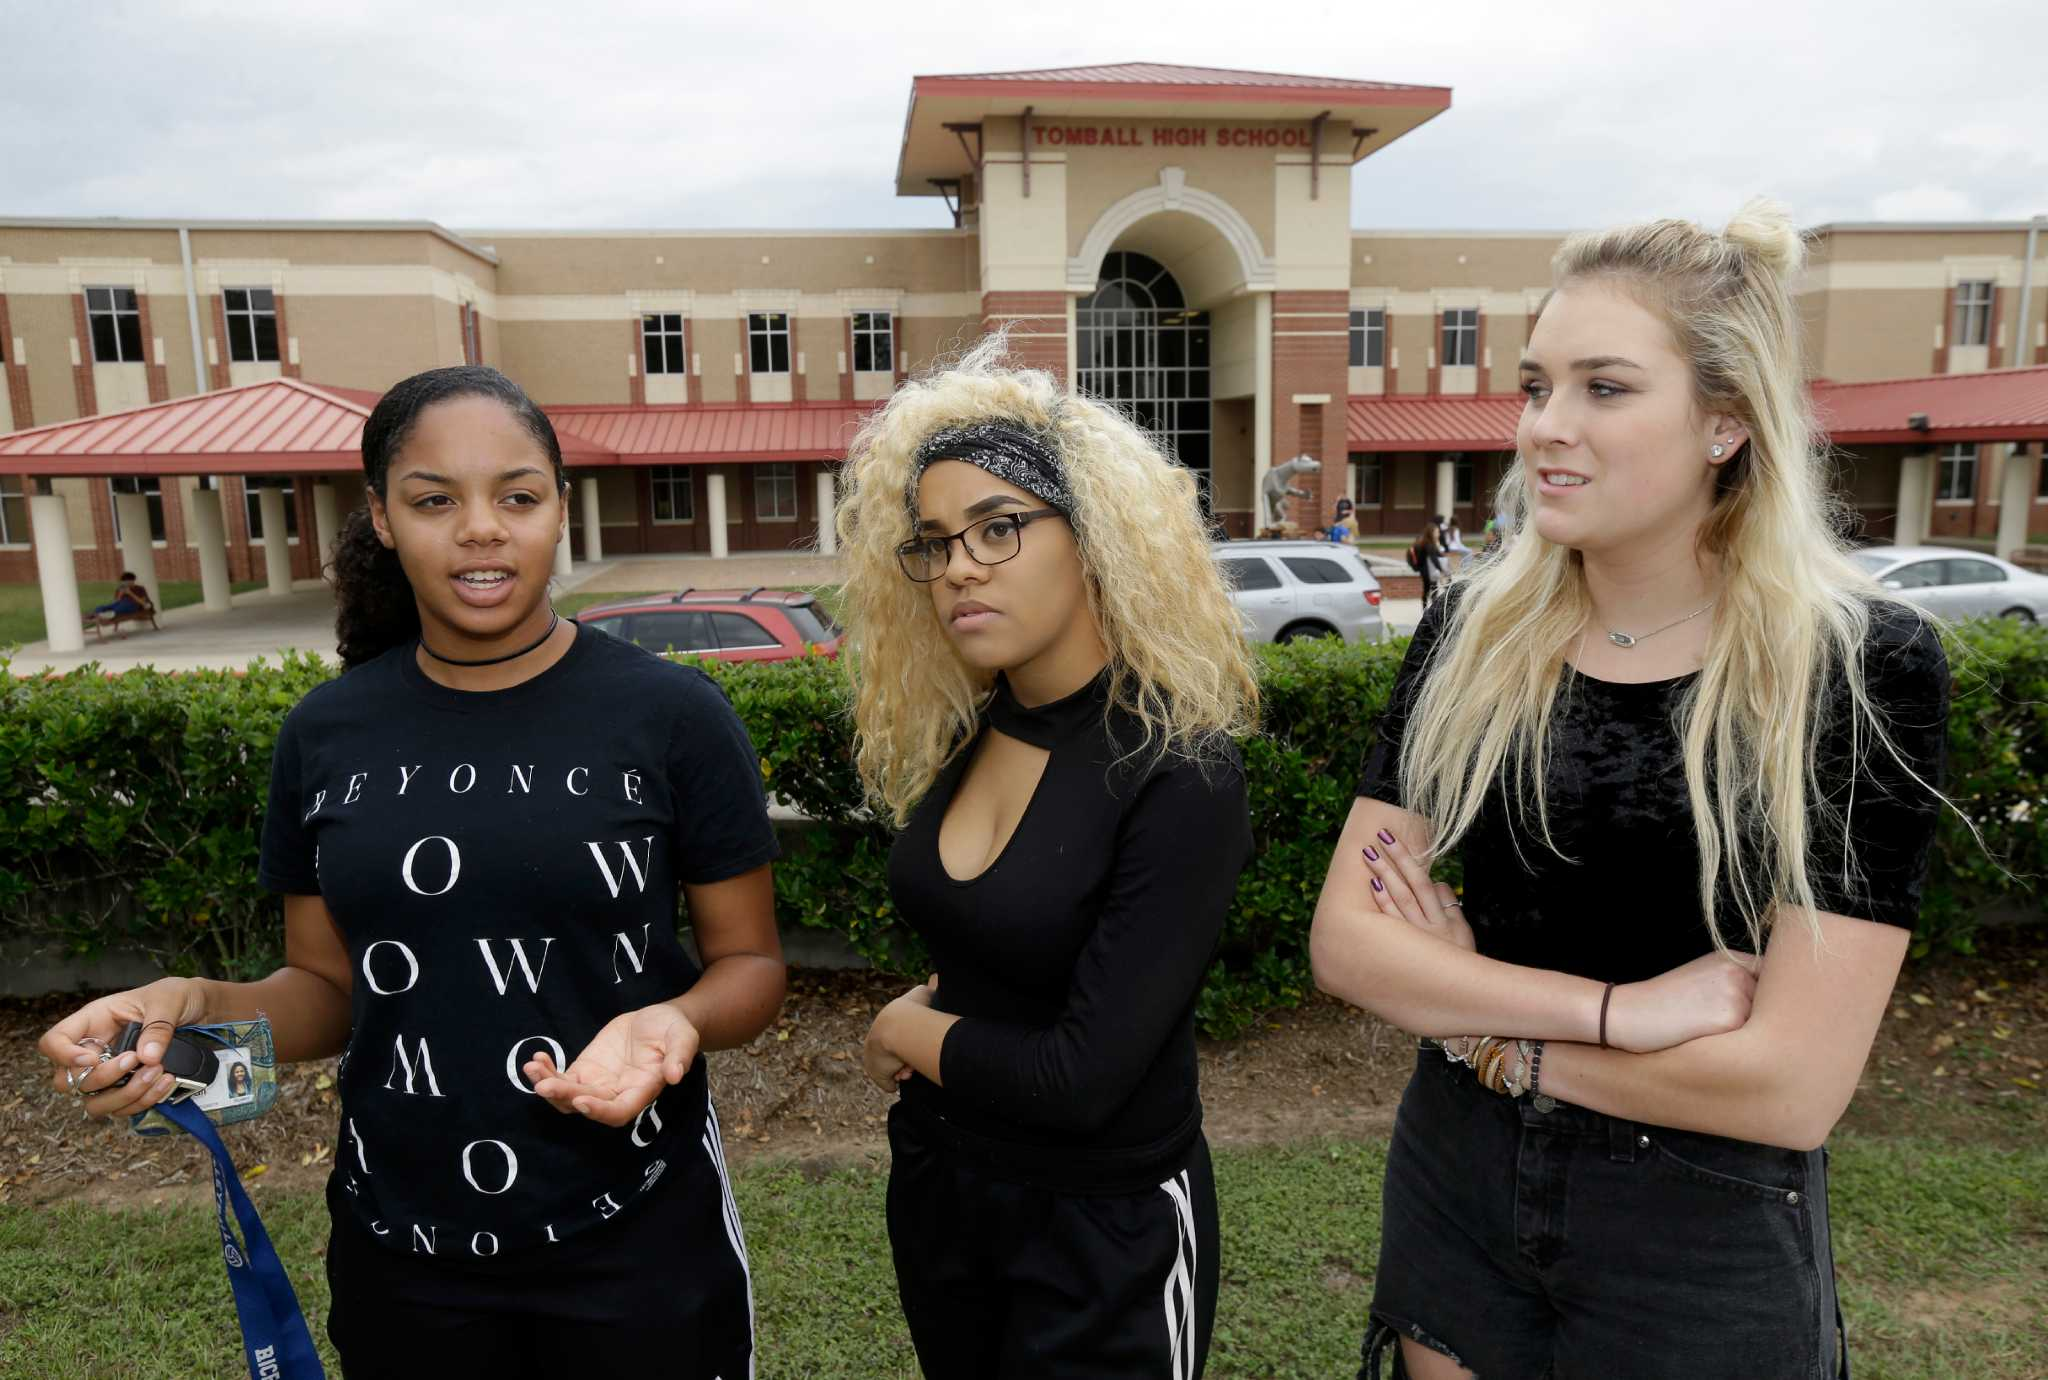 Tomball High students clash over Black Lives Matter - Houston ...